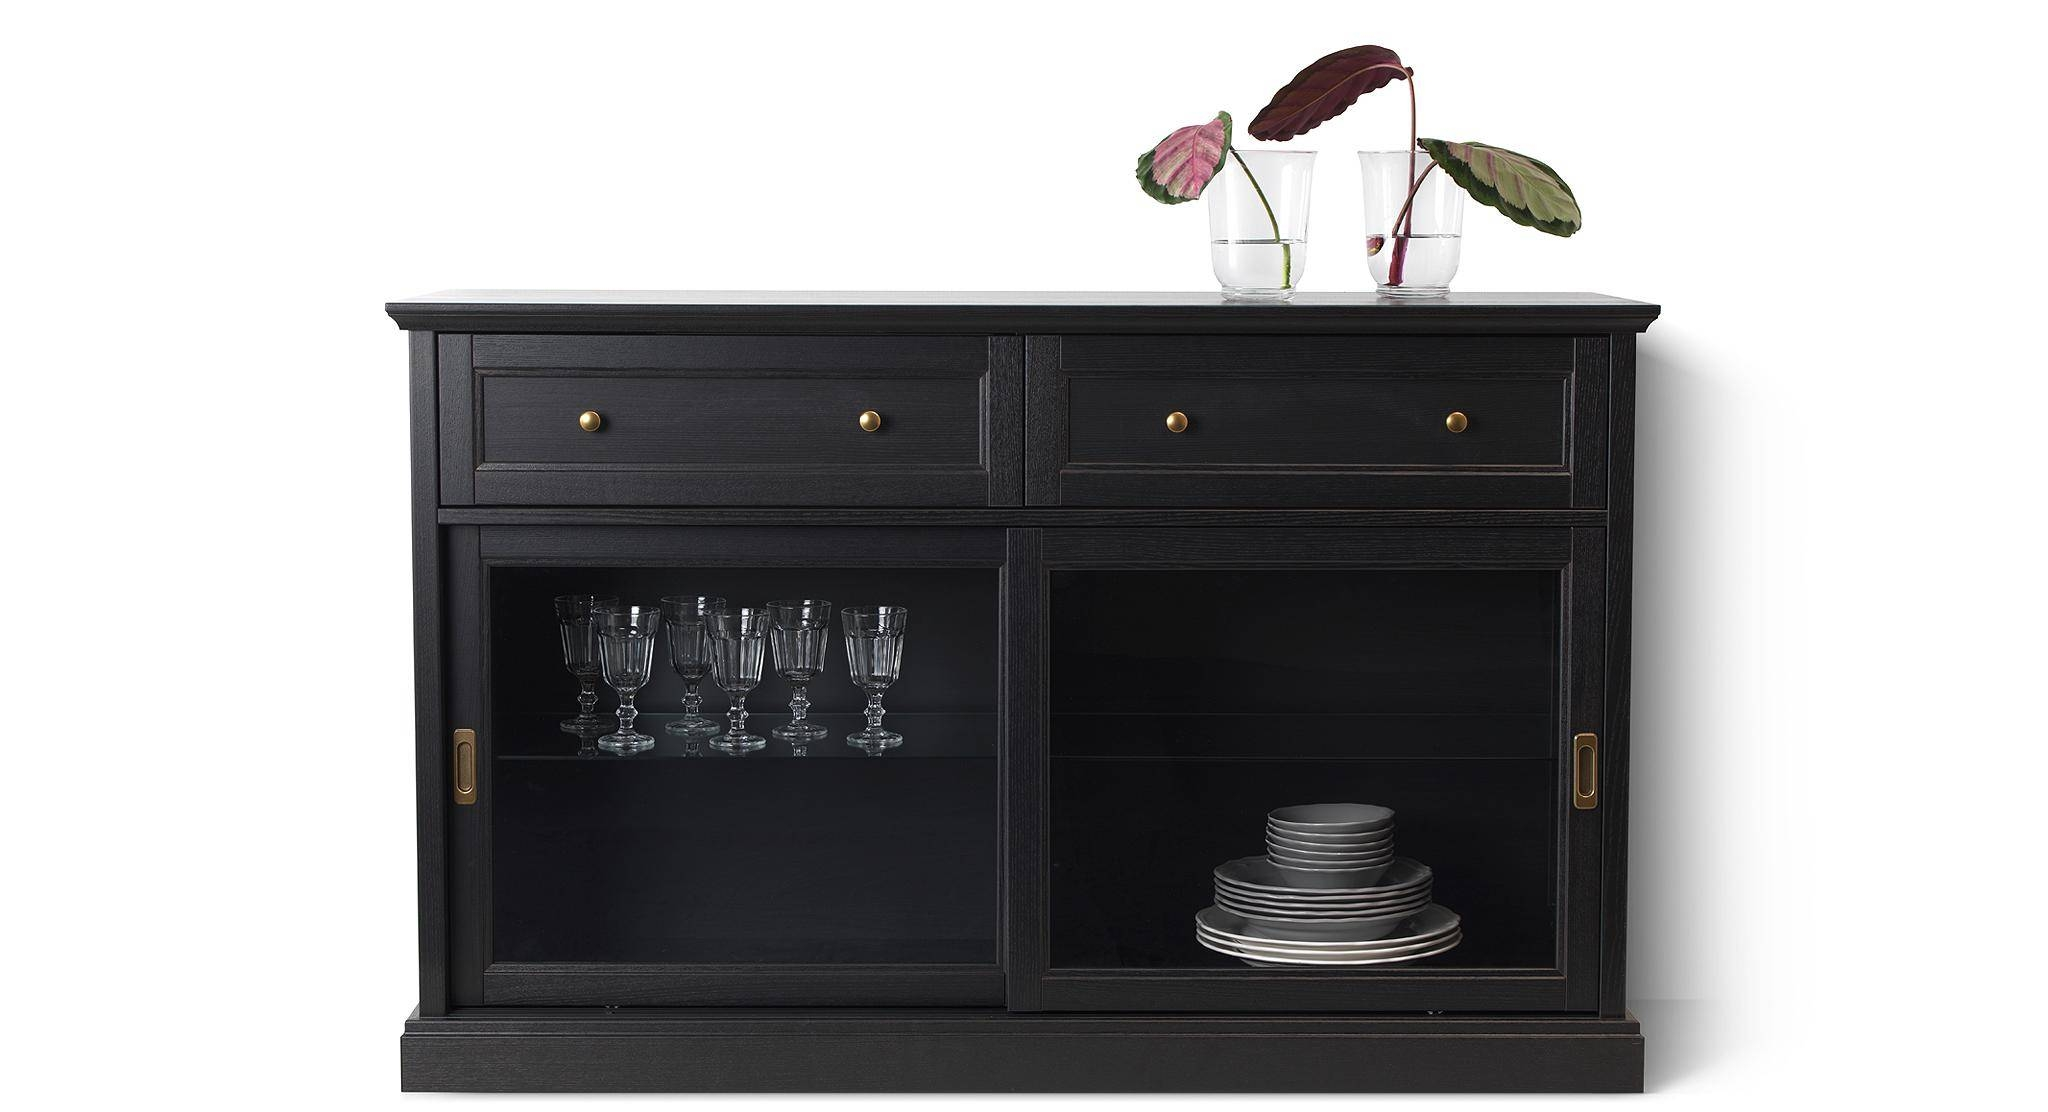 Sideboards & Buffet Cabinets | Ikea In Best And Newest Ikea Sideboards (#14 of 15)